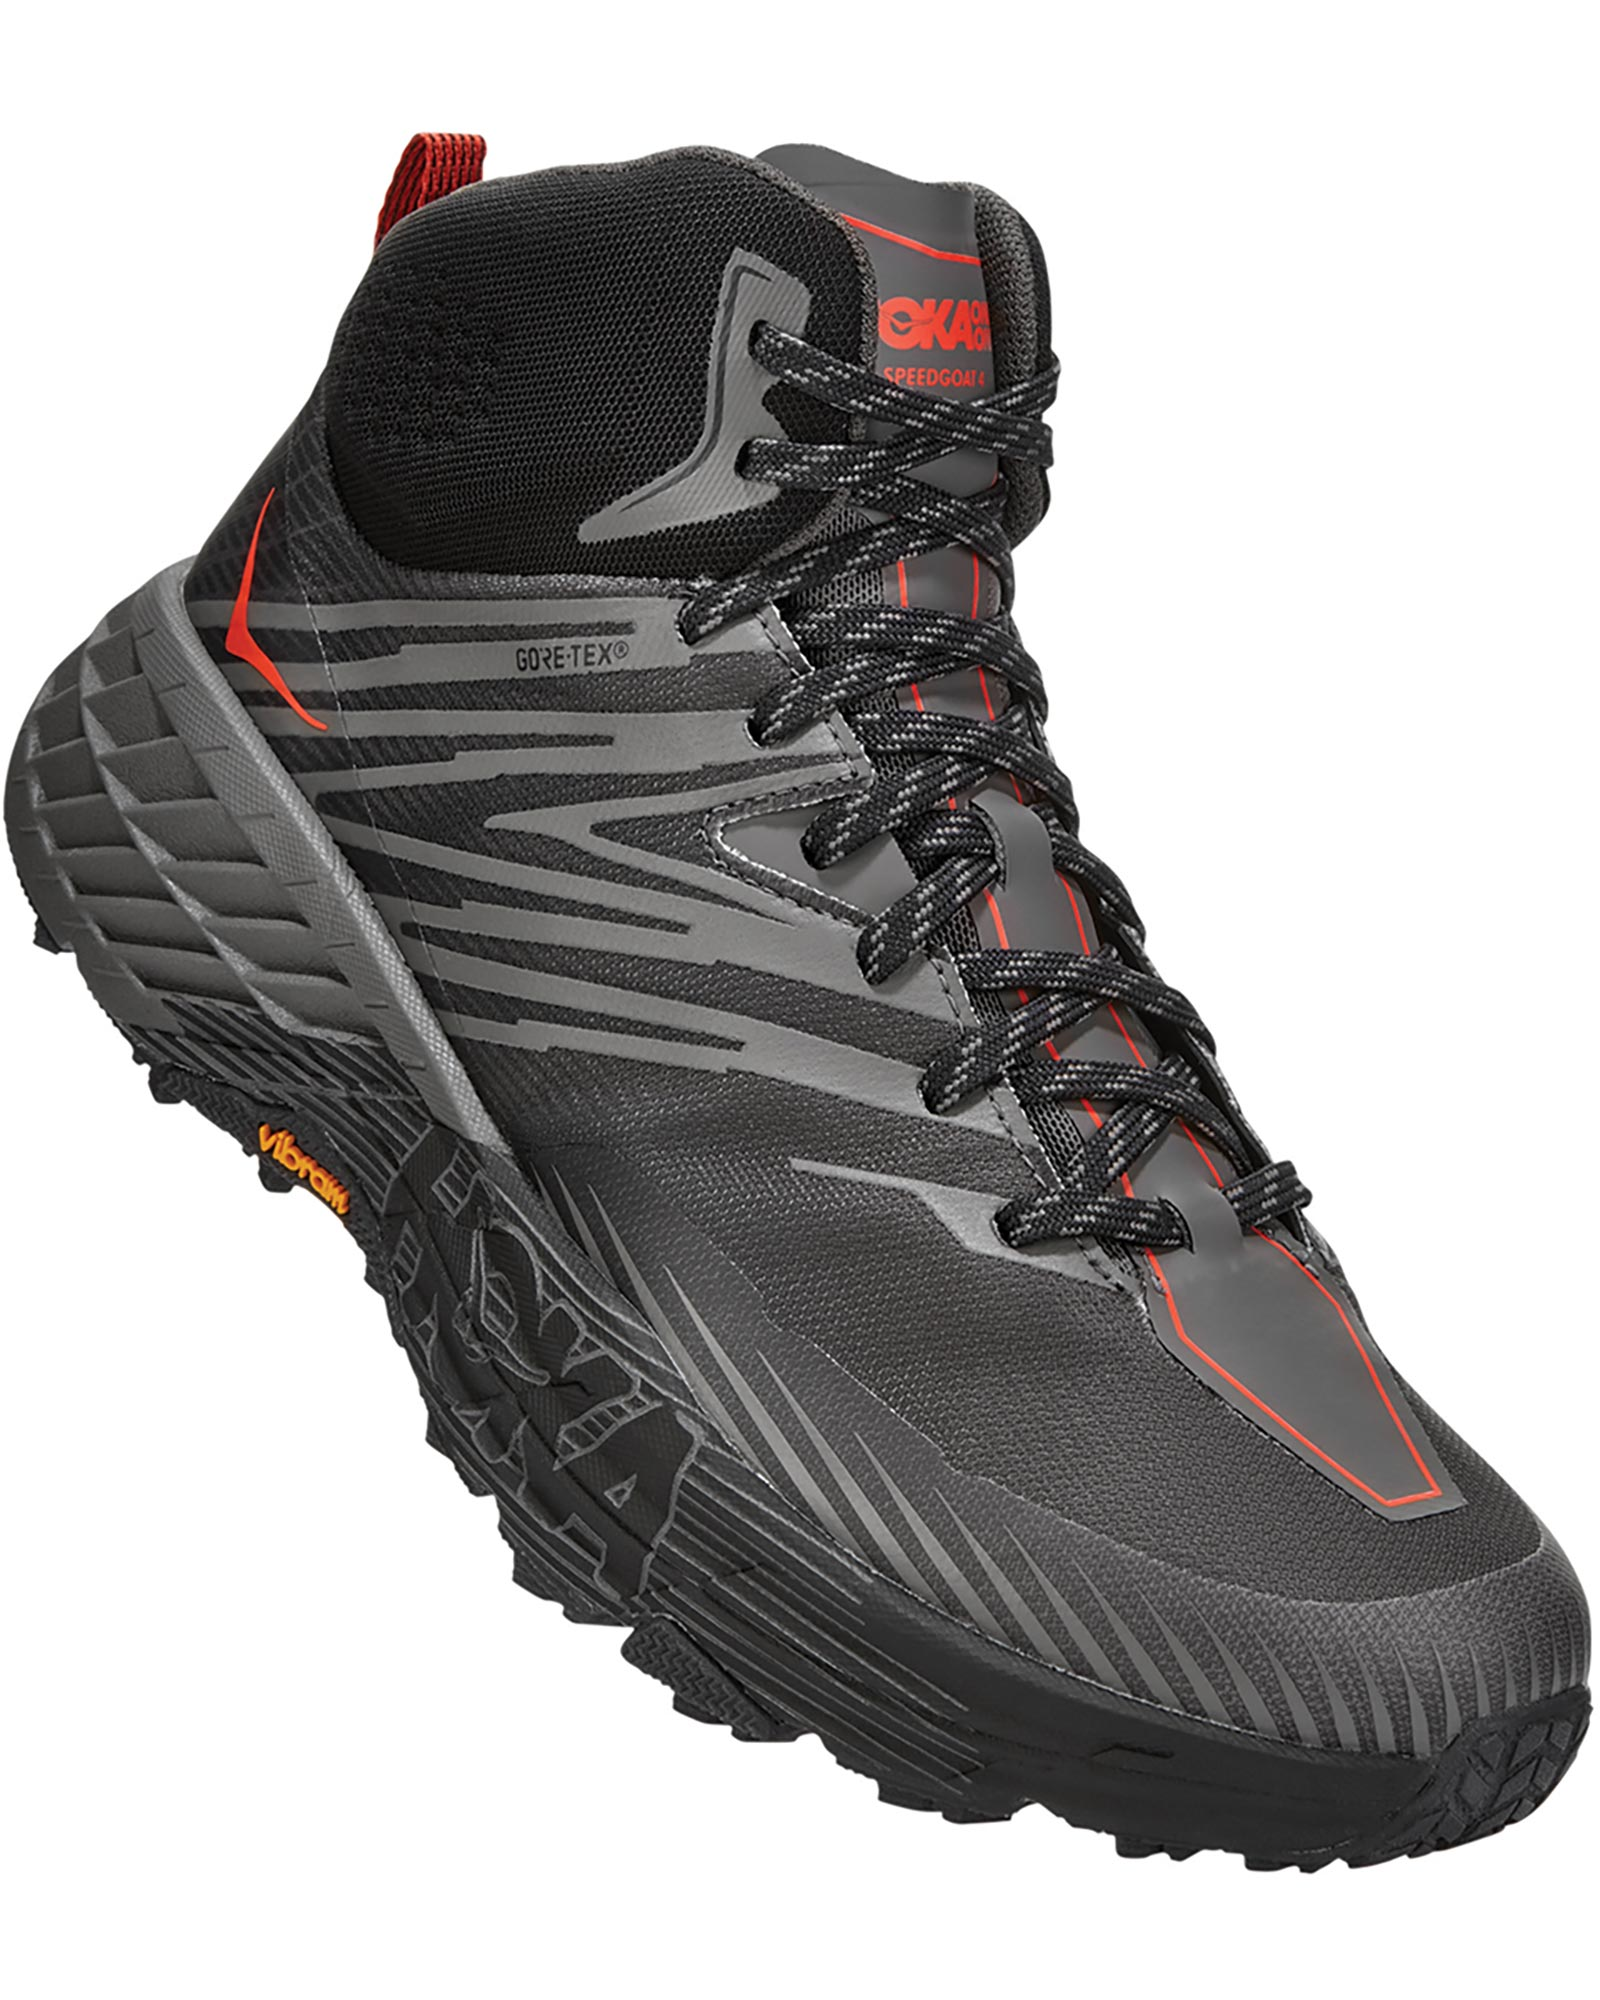 Hoka One One Speedgoat 2 Mid GORE-TEX Men's Boots 0